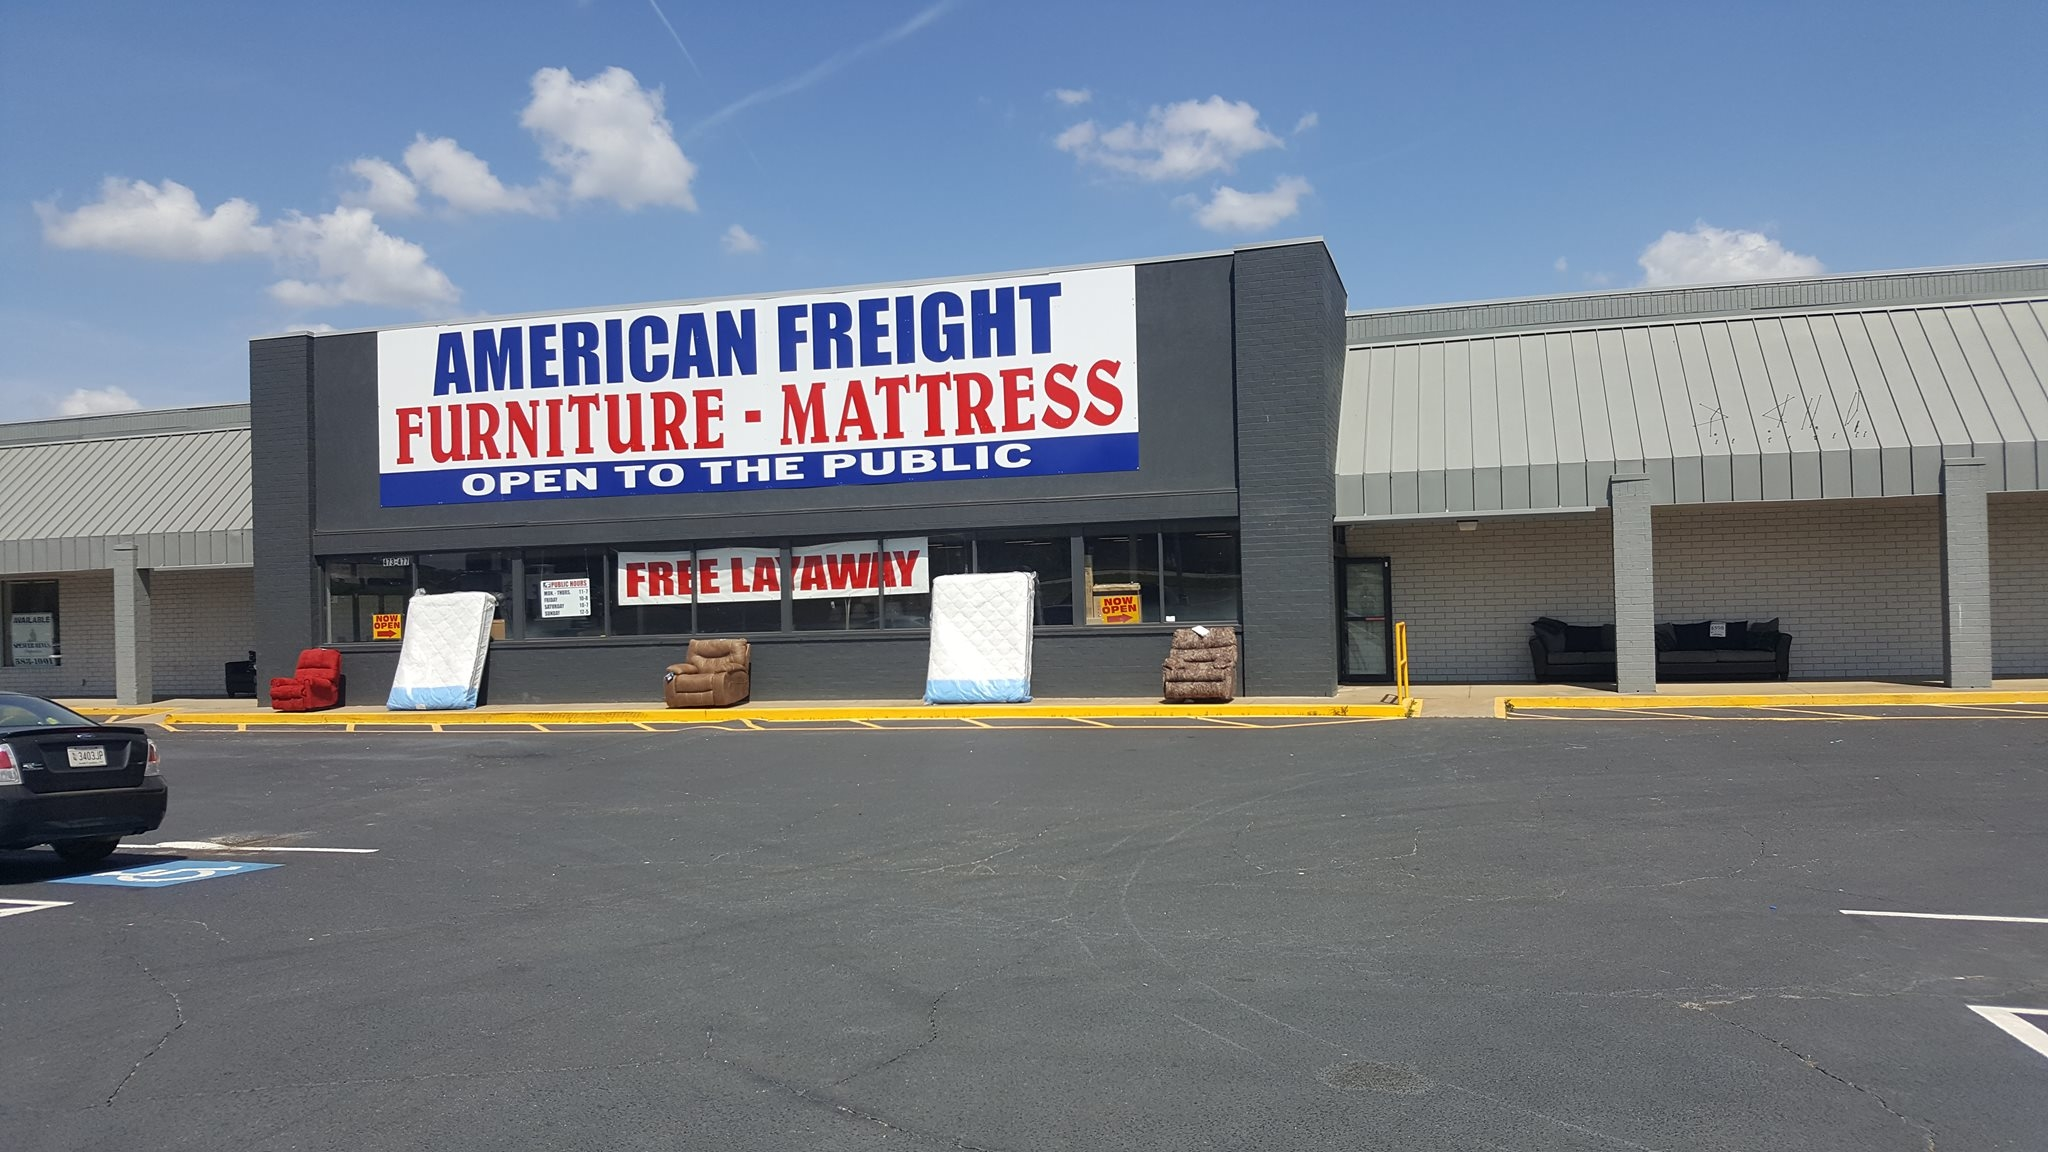 American freight furniture and mattress in spartanburg sc for Furniture 4 less outlet